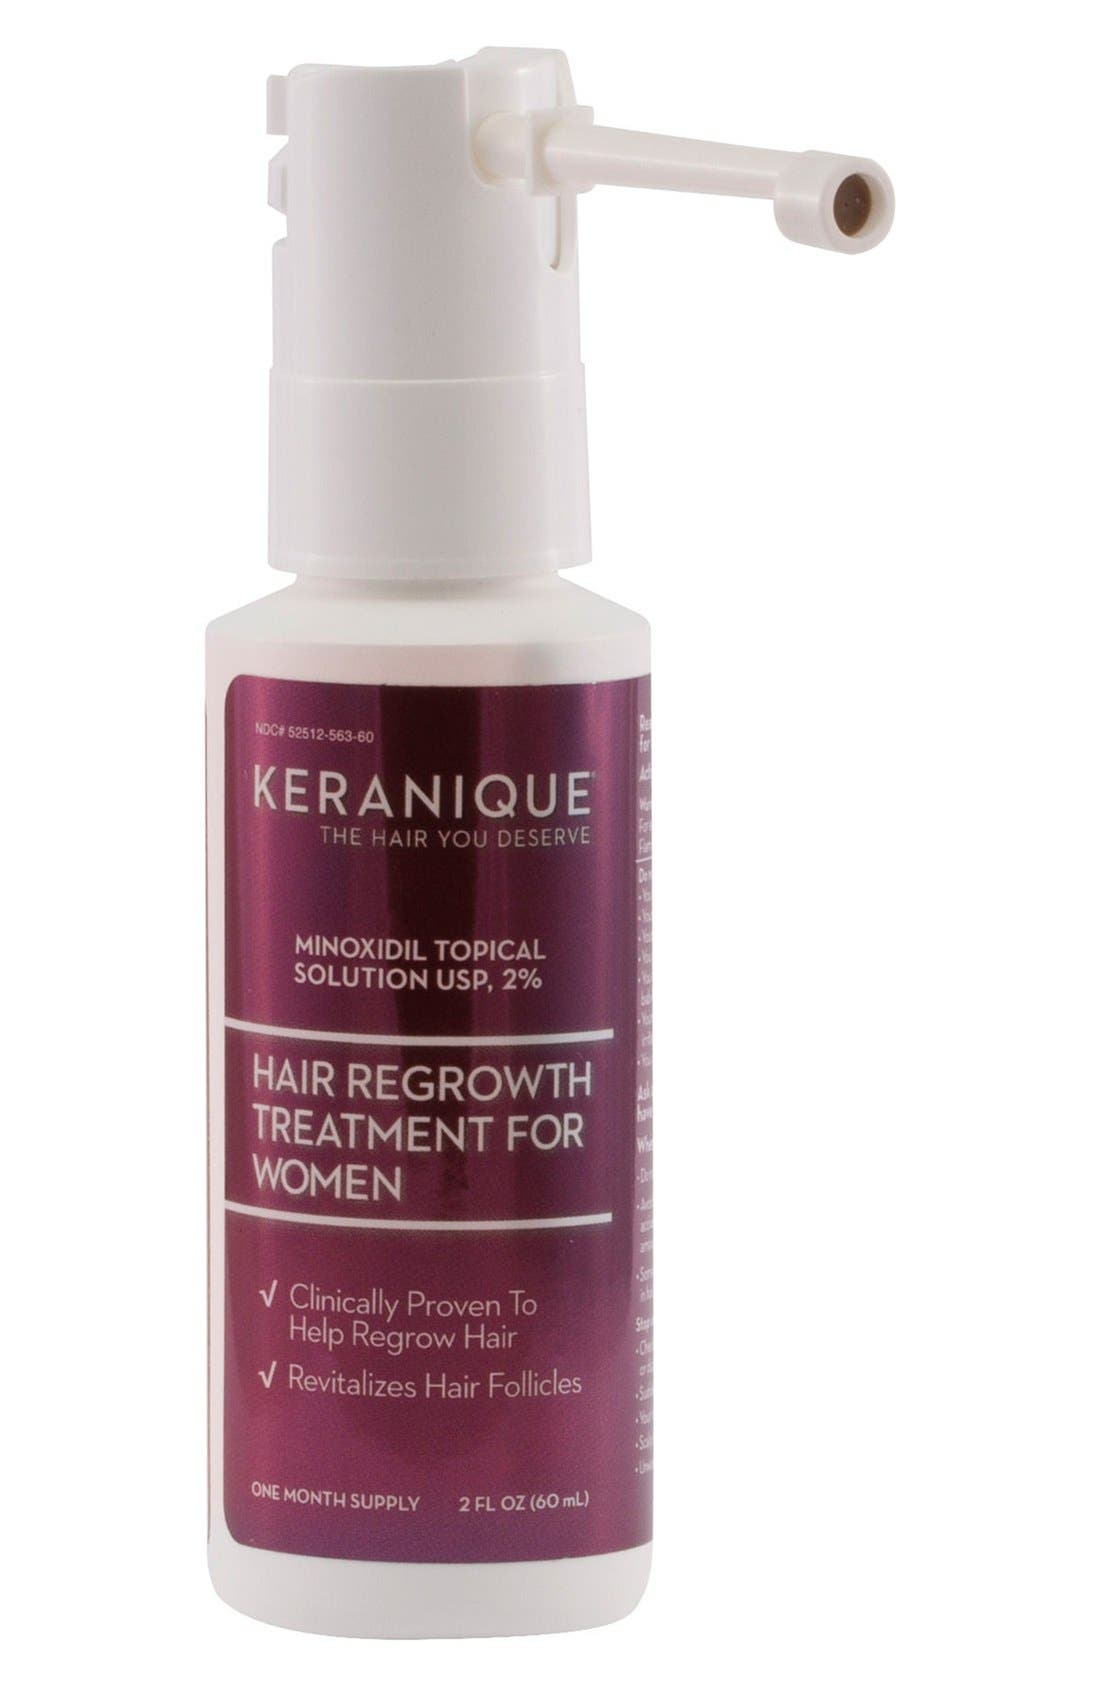 Keranique Hair Regrowth Treatment Spray for Women